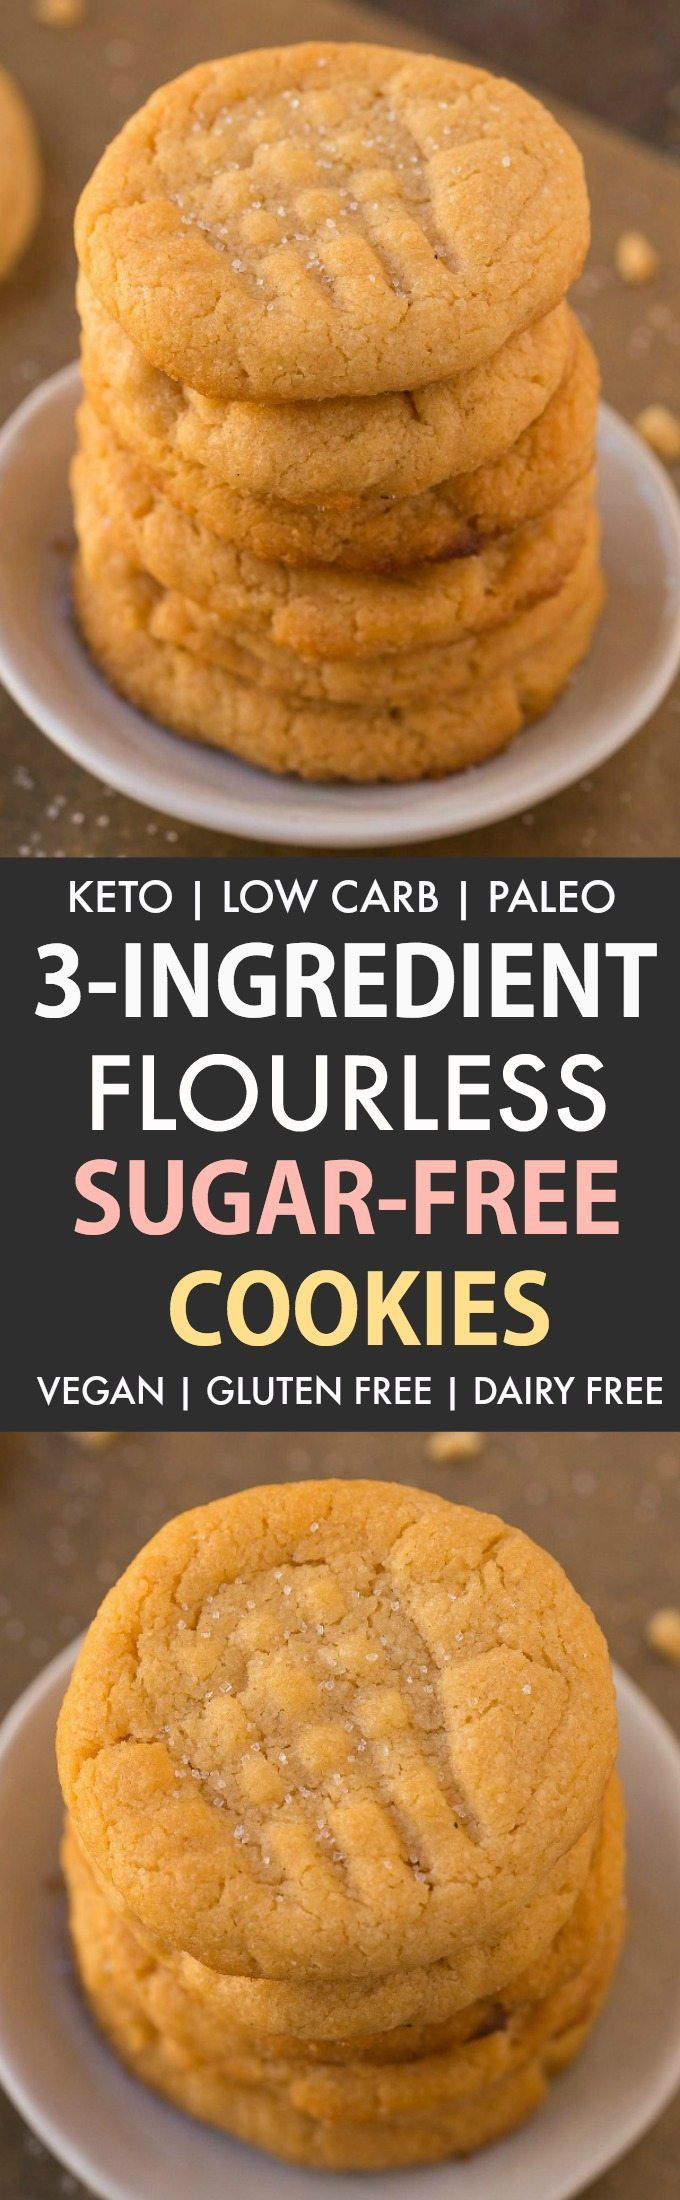 3-Ingredient Low Carb Sugar Free Cookies (Keto, Flourless, Paleo, Vegan)- The classic peanut butter cookie gets a healthy and sugar-free makeover- Chewy, soft and crispy in one! #cookies #ketodessert #ketobaking #sugarfreerecipes #lowcarbrecipes #ketorecipes | Recipe on thebigmansworld.com